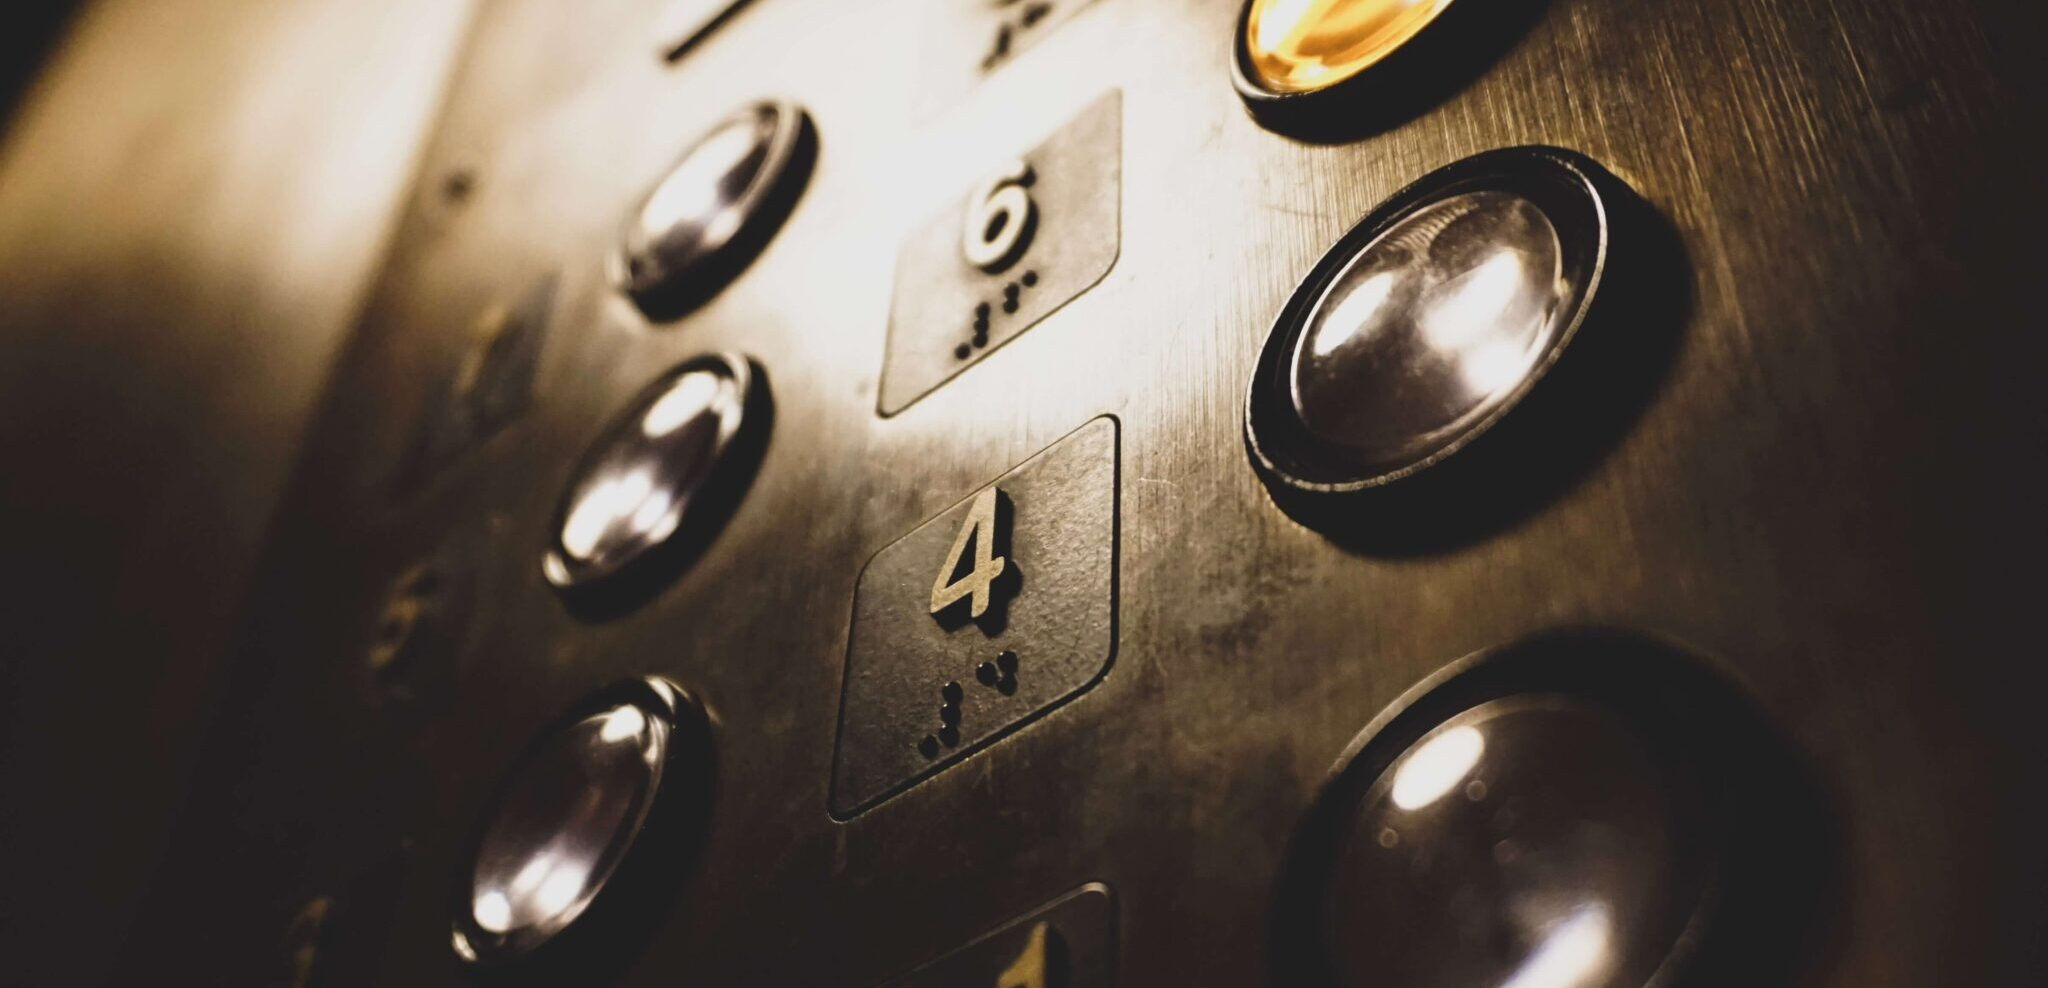 An elevator button with the fourth floor.